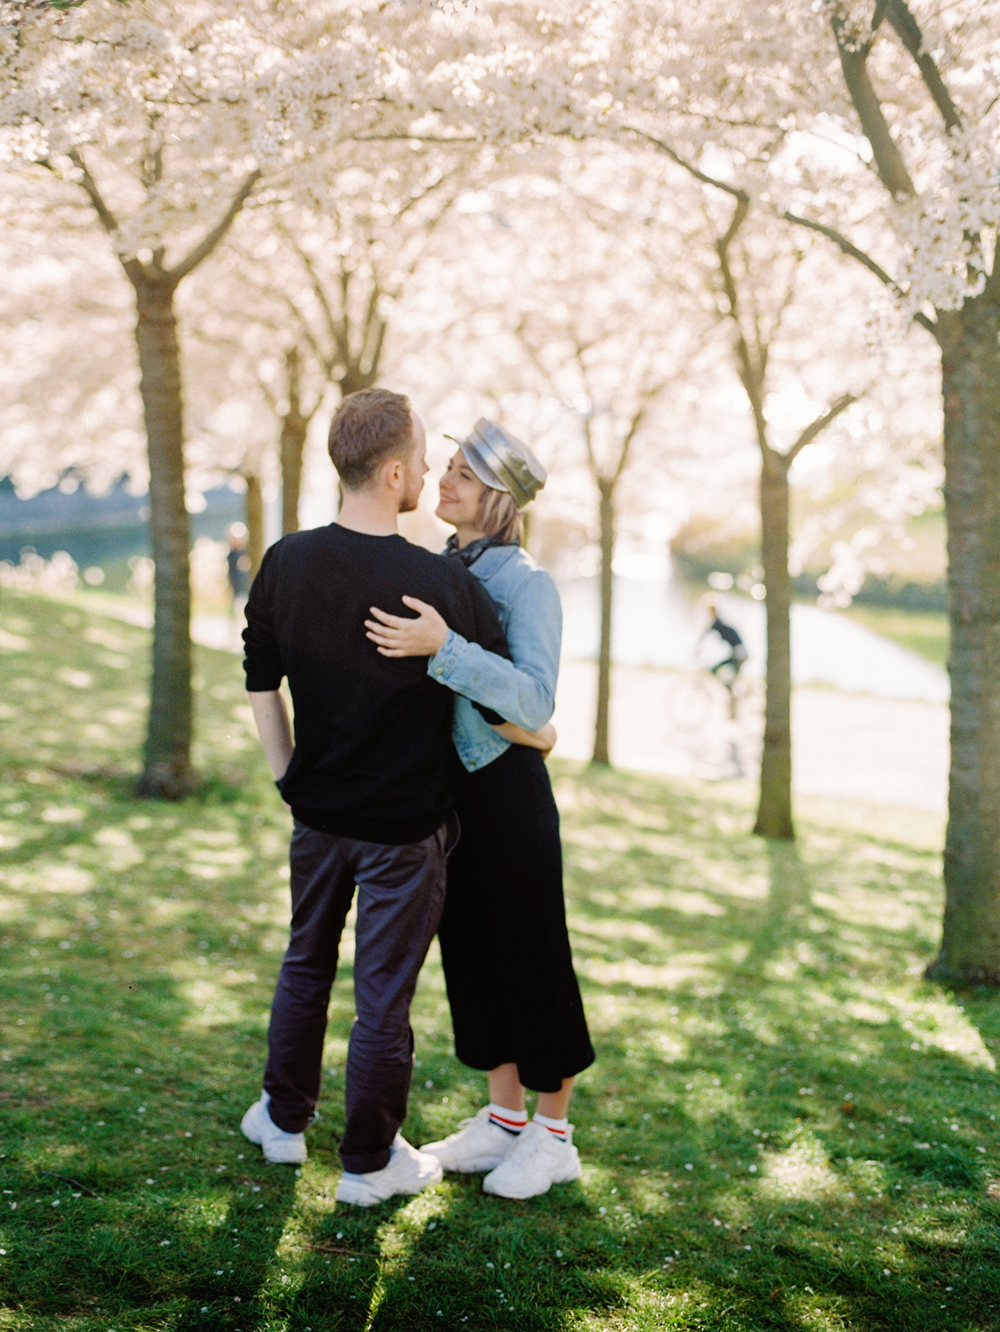 Engagement and Wedding Photosession in Copenhagen | Film Fuji 400H, Mamiya 645 | Love spring Denmark